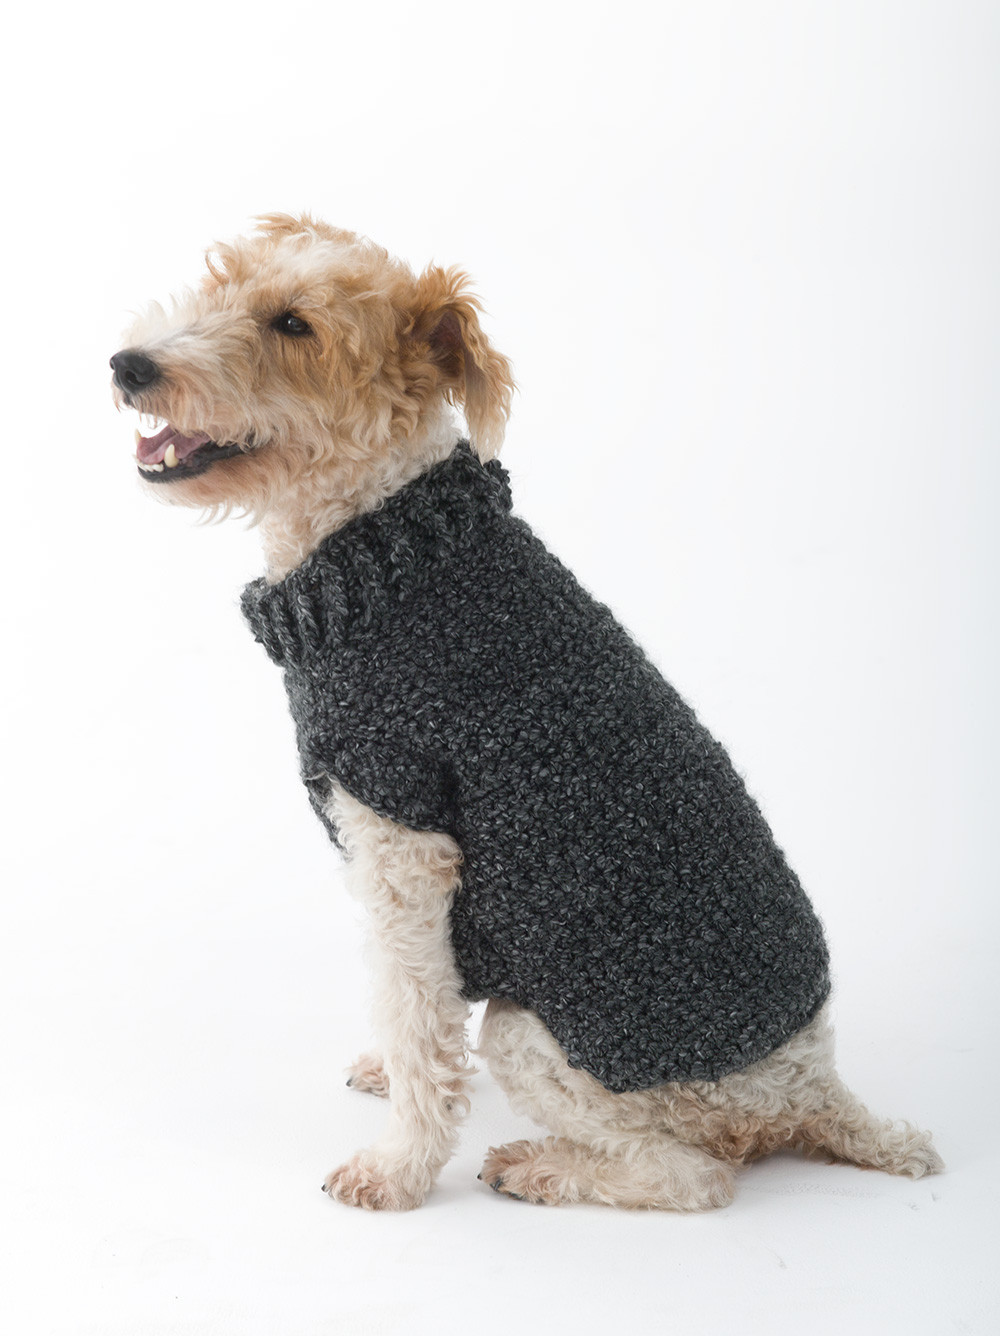 Crochet Dog Fresh Free Crochet Dog Sweater Patterns for Small Dogs Of Perfect 50 Images Crochet Dog